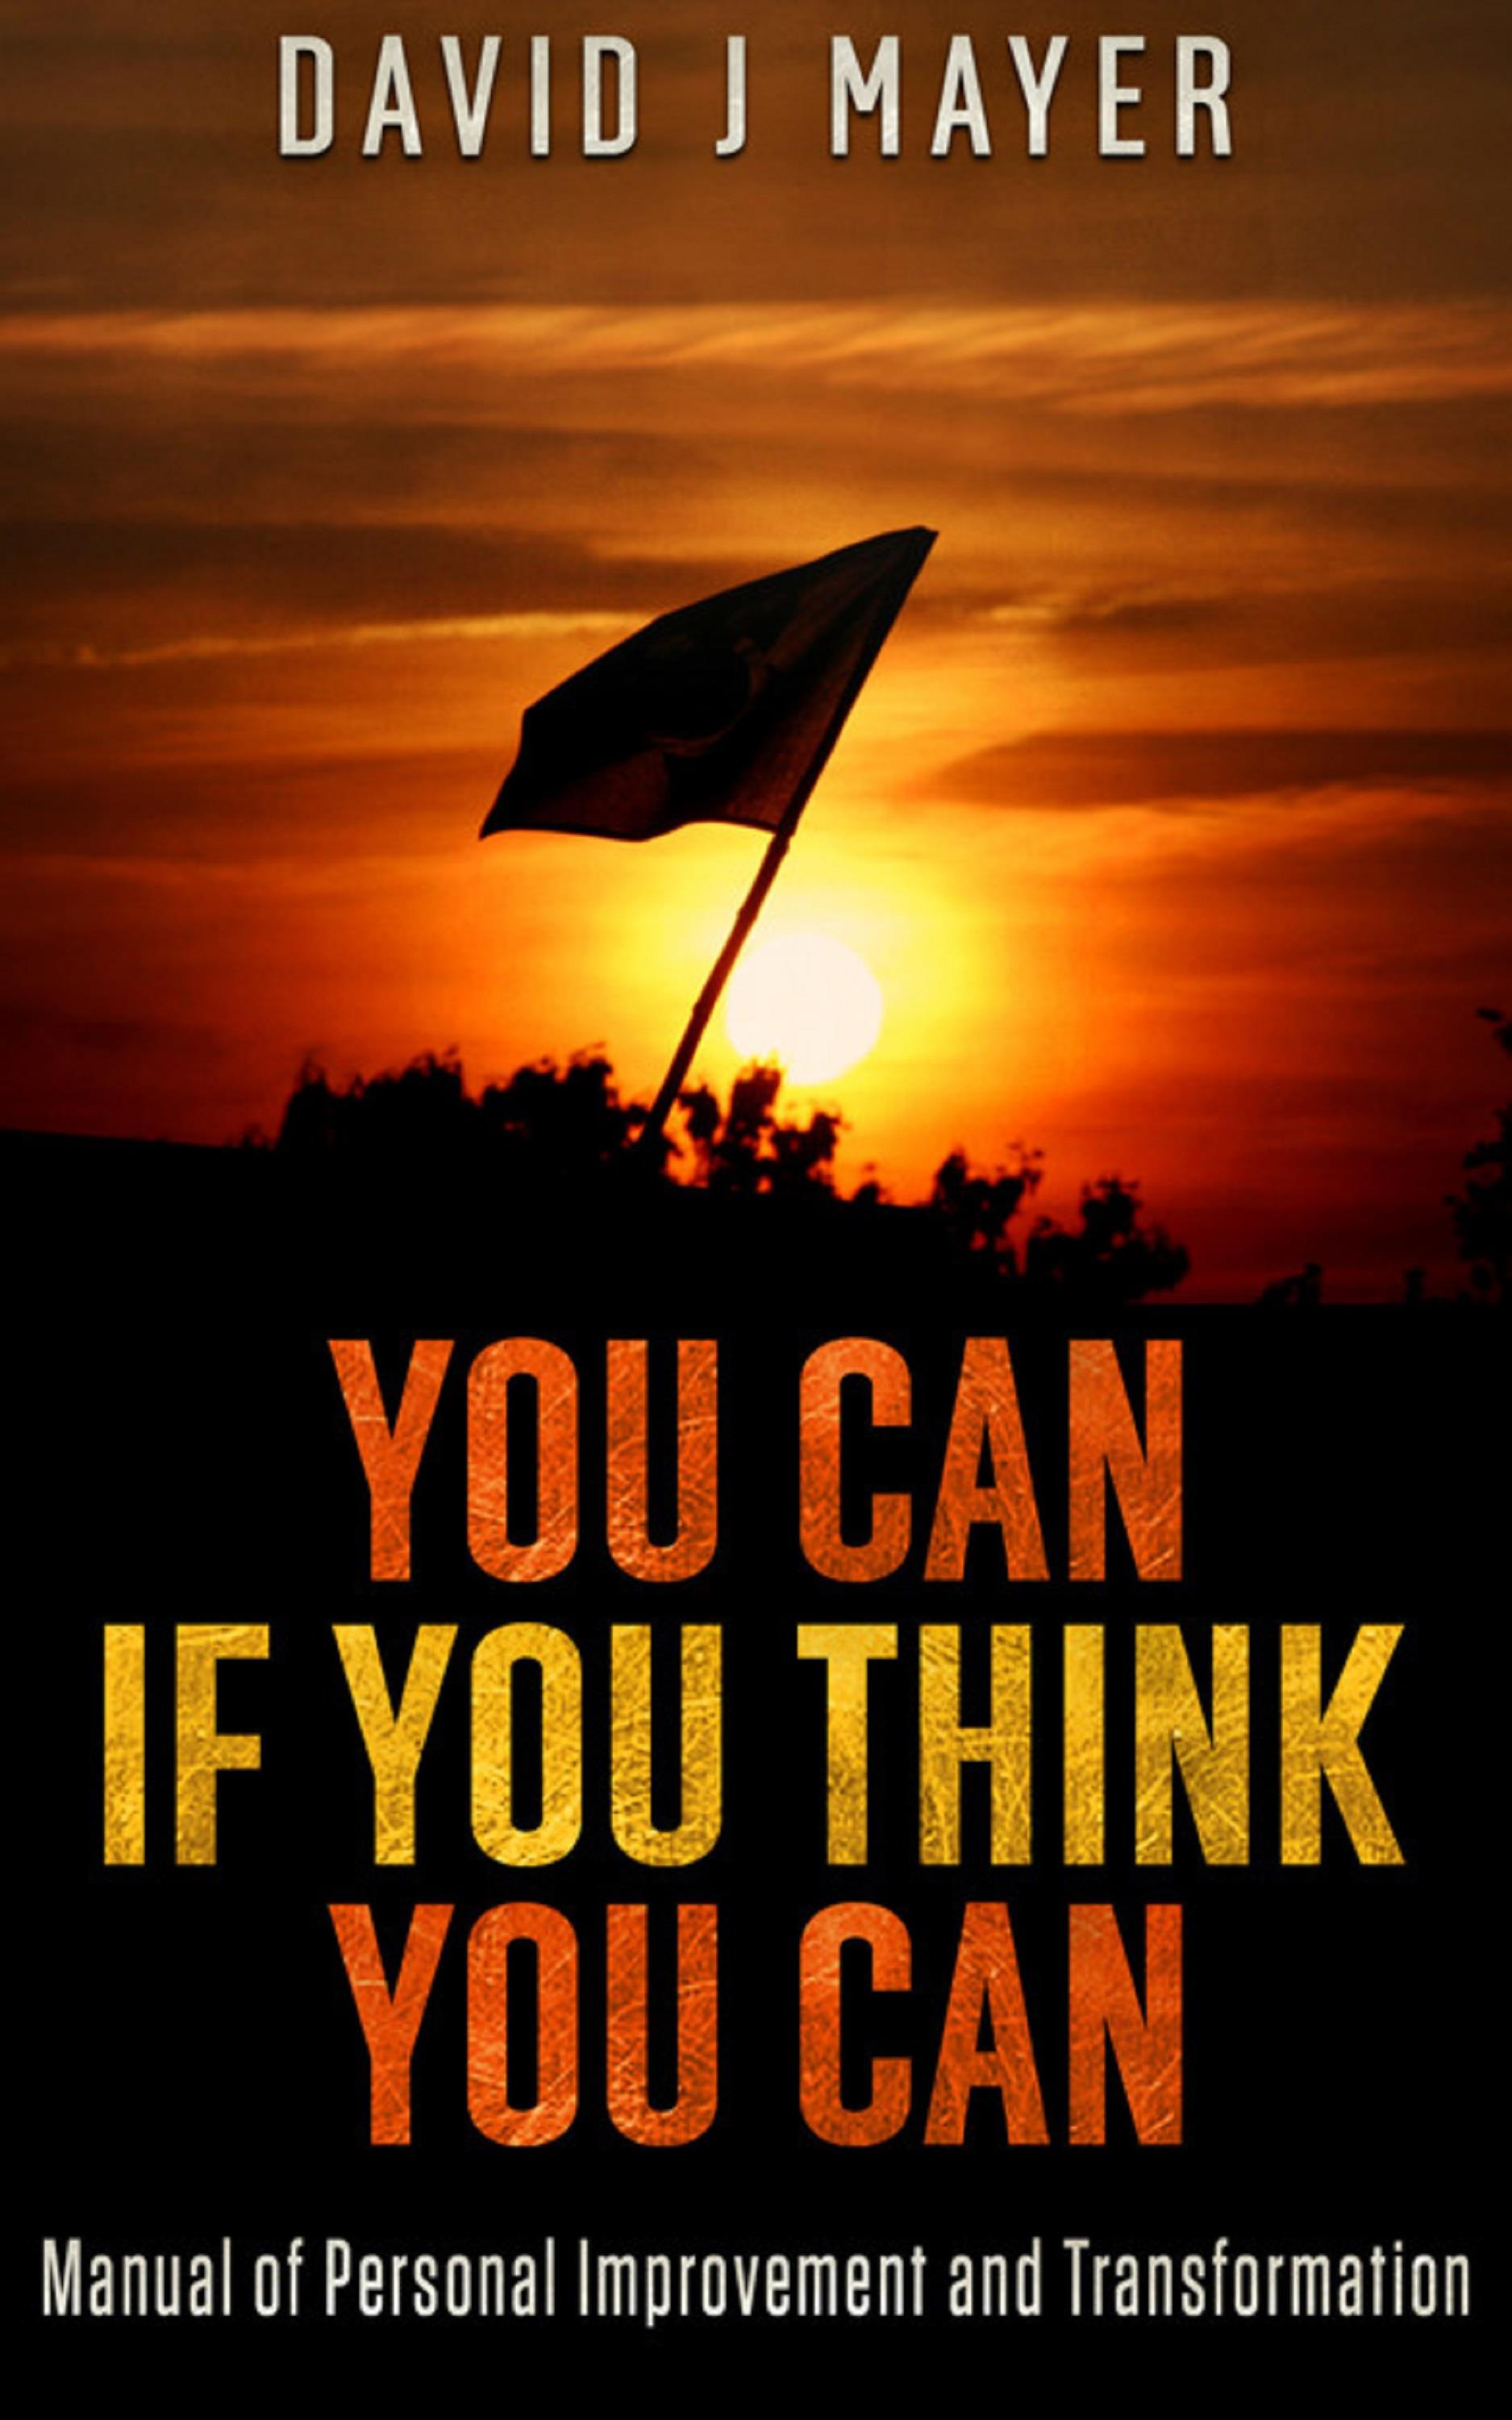 You CAN if you Think you CAN - Manual of Personal Improvement and Transformation